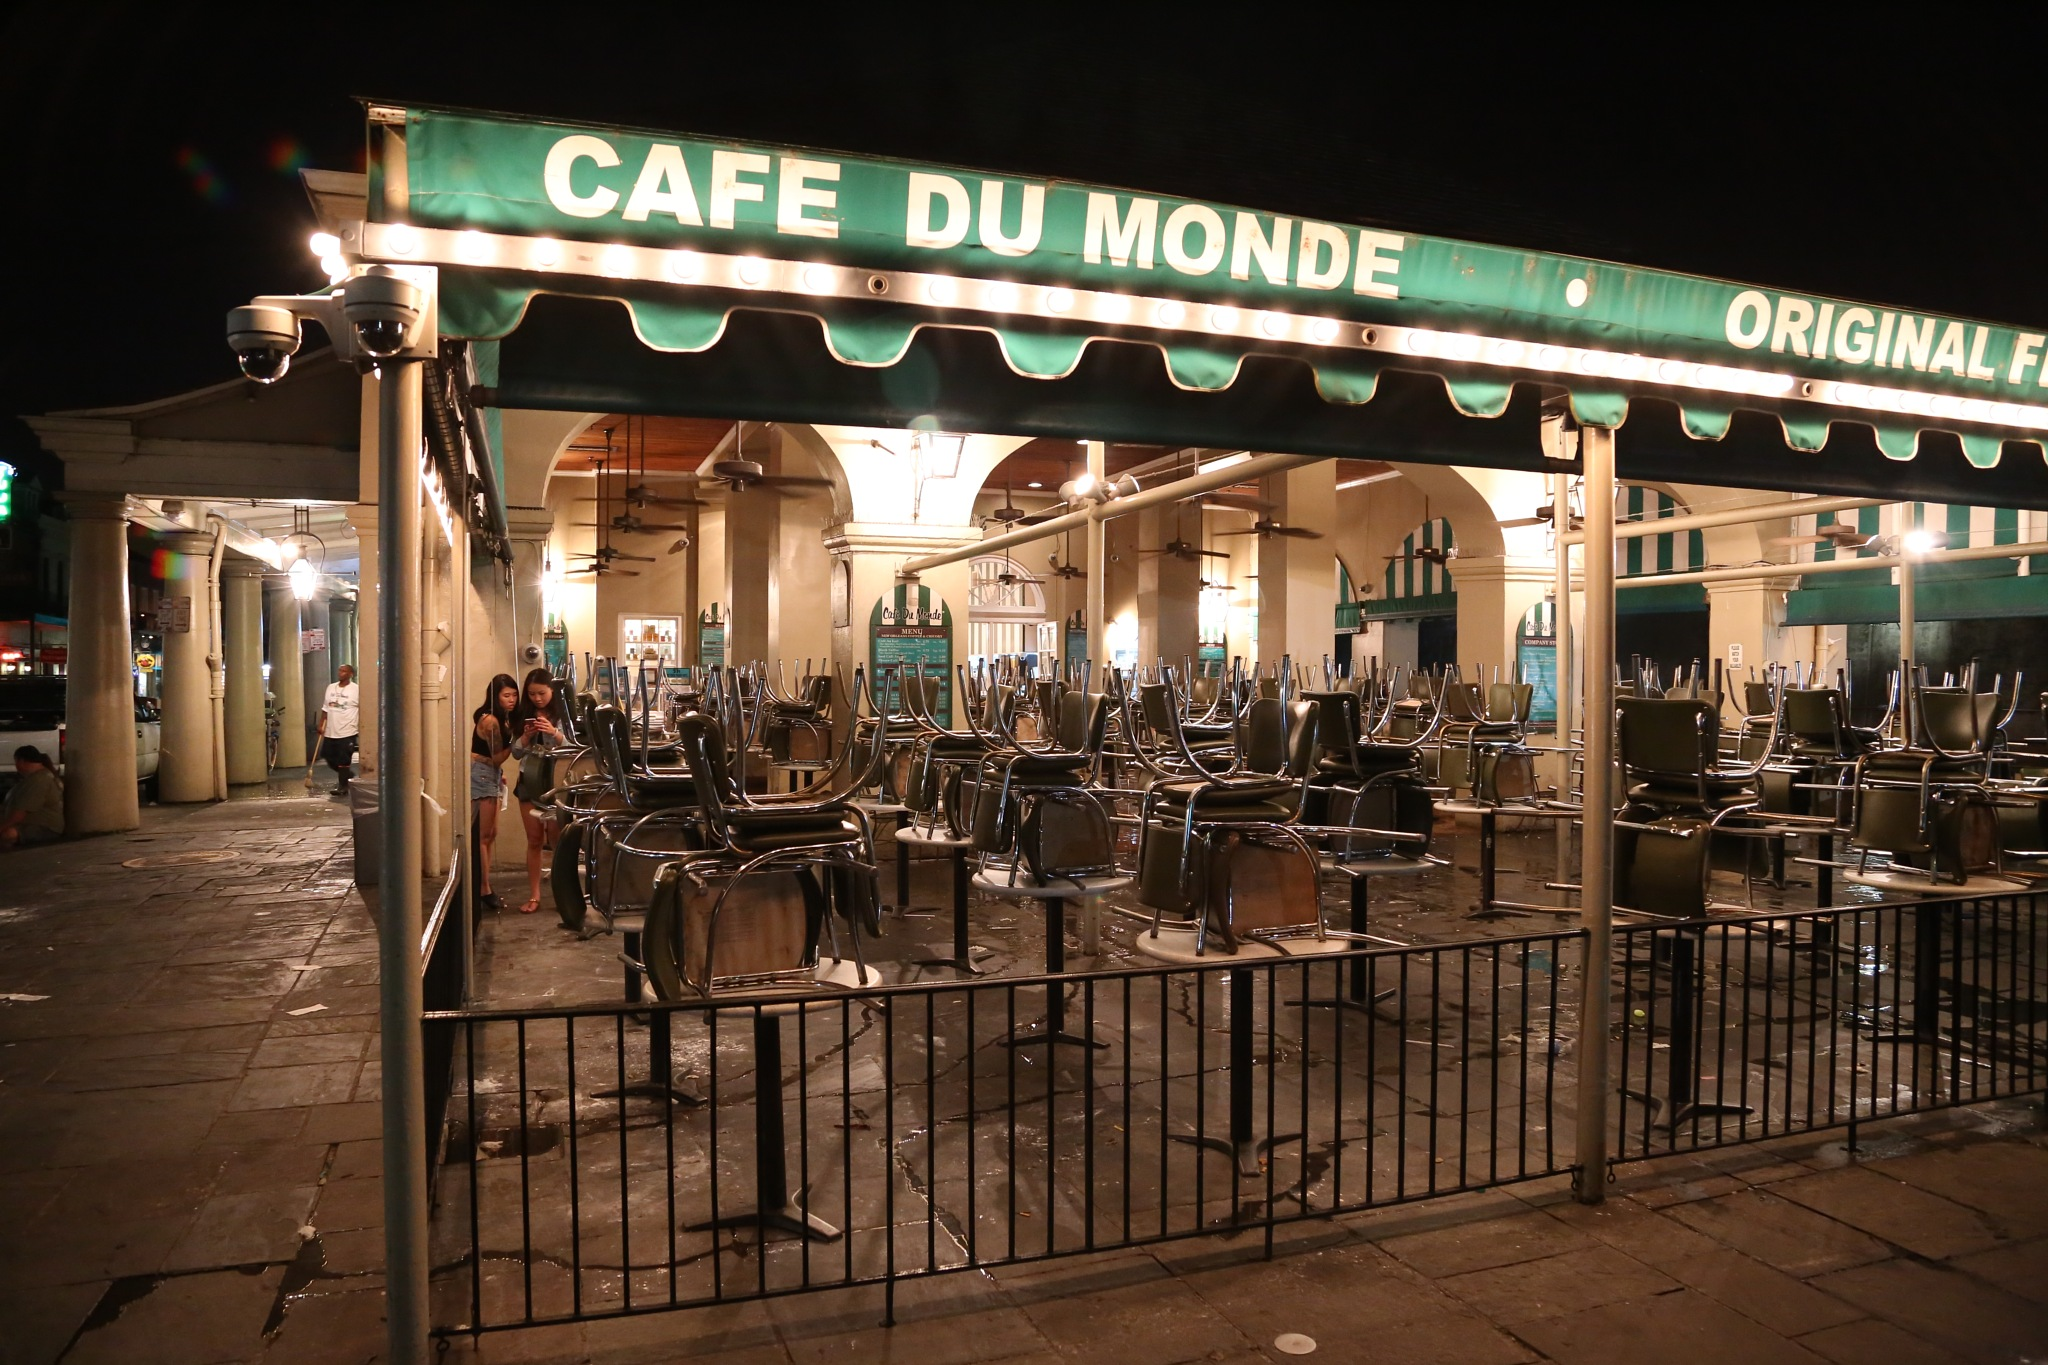 Cafe Du Monde at night by Henry M. Radcliffe III